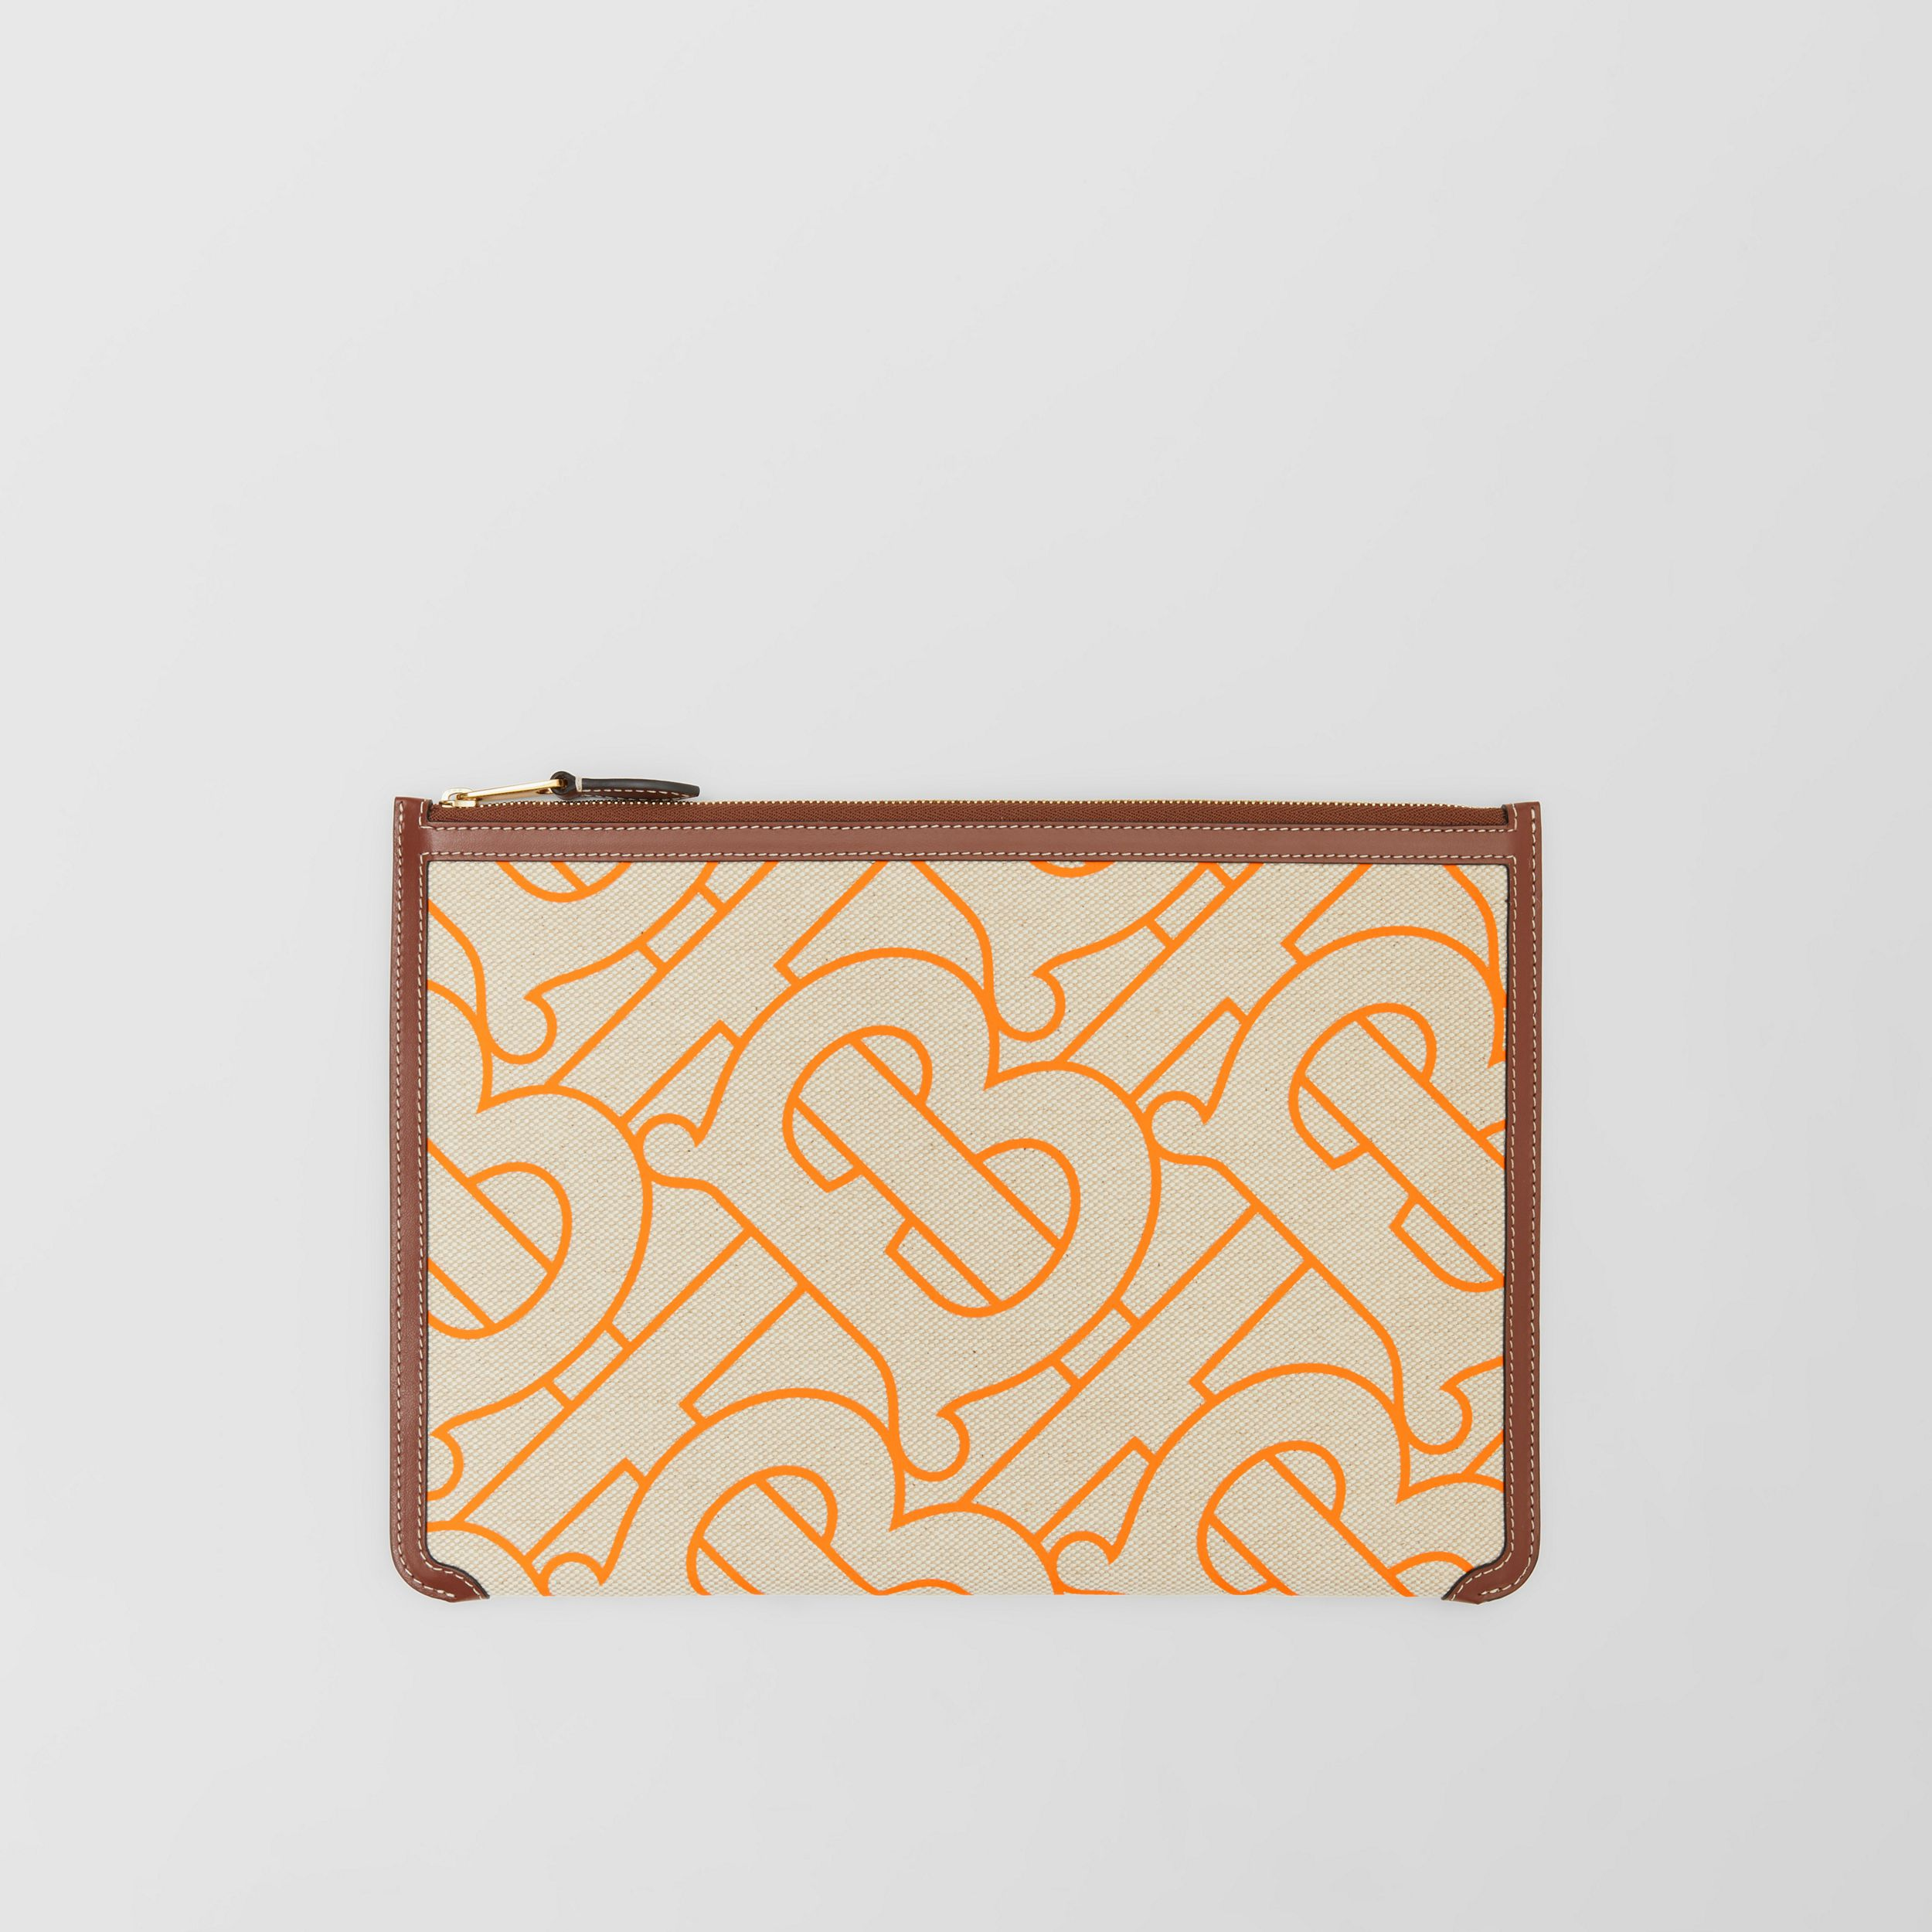 Monogram Motif Canvas and Leather Pouch in Natural/orange - Women | Burberry - 1